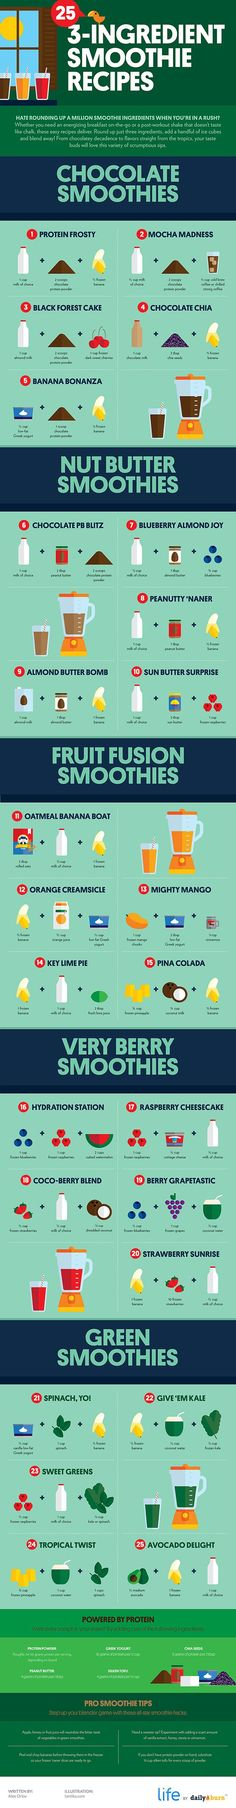 Delish smoothie recipes